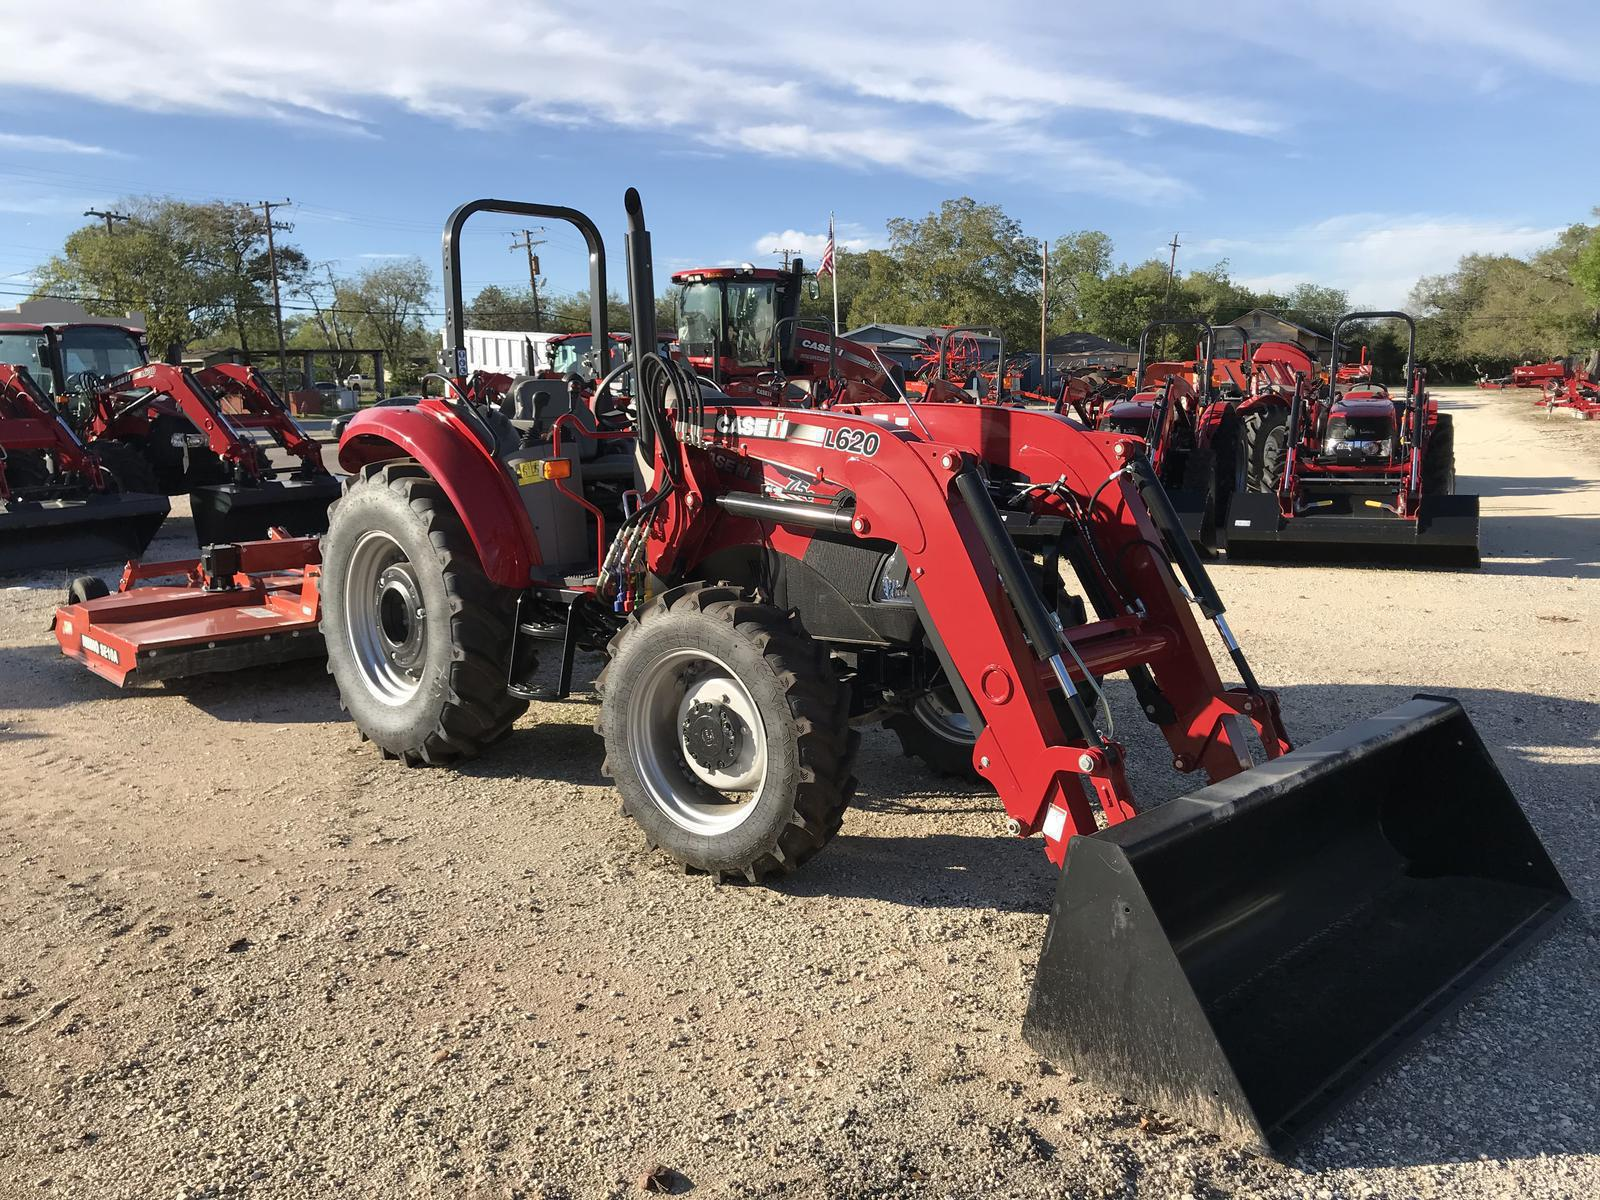 Inventory from Case IH Tuttle Motor & Hardware Poteet, TX